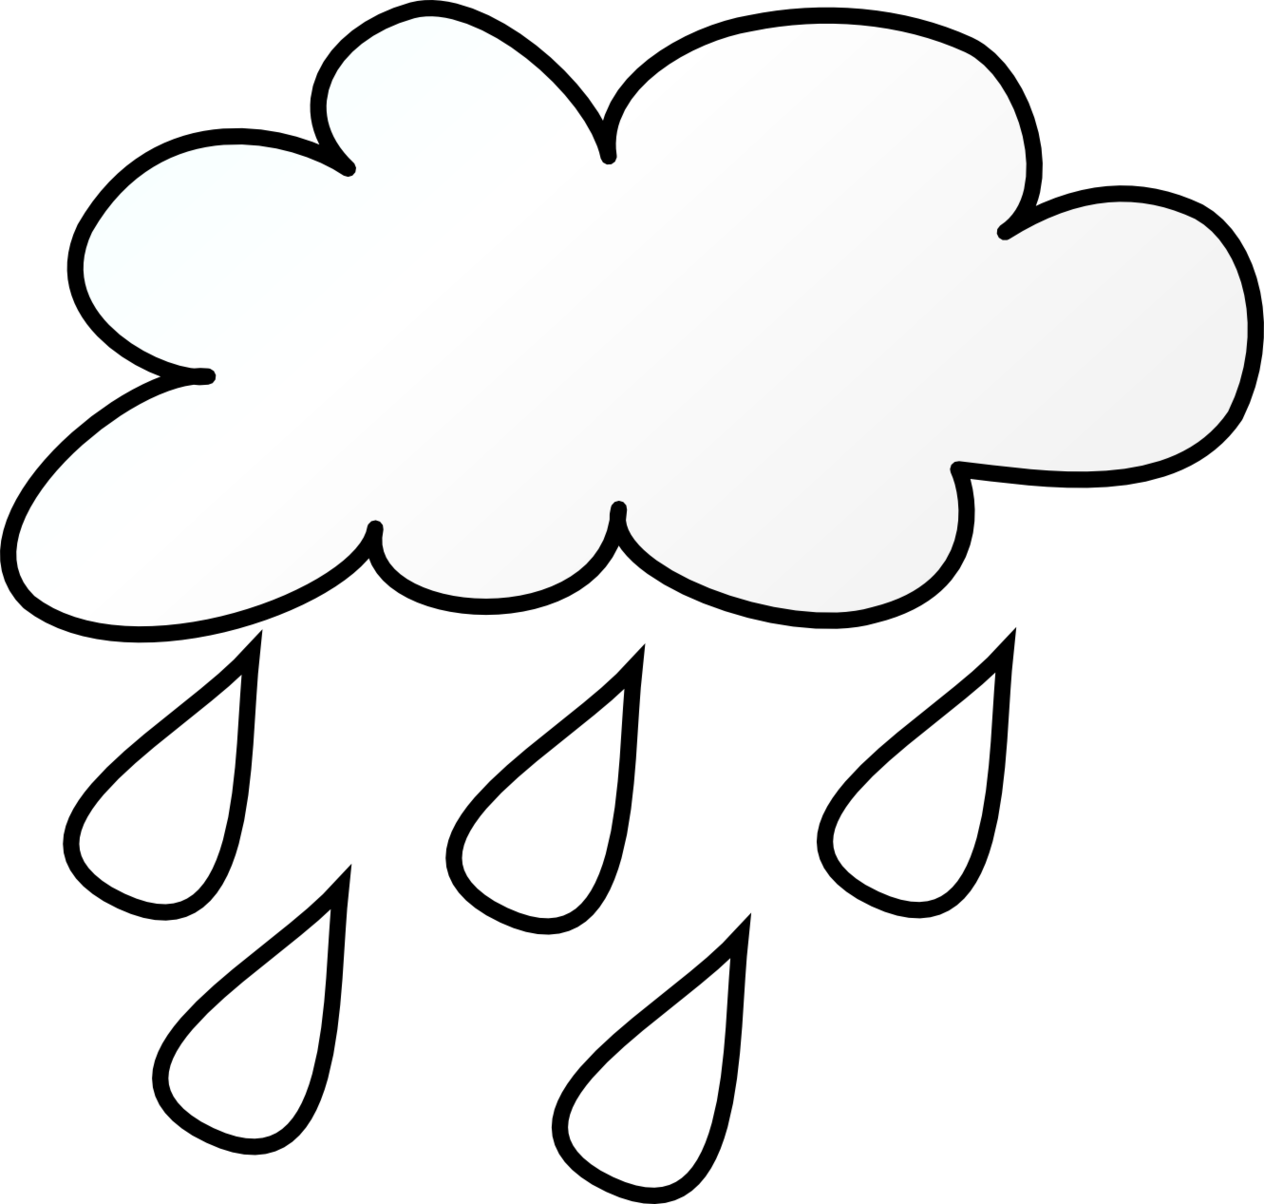 Free symbol cliparts download. Photo clipart weather